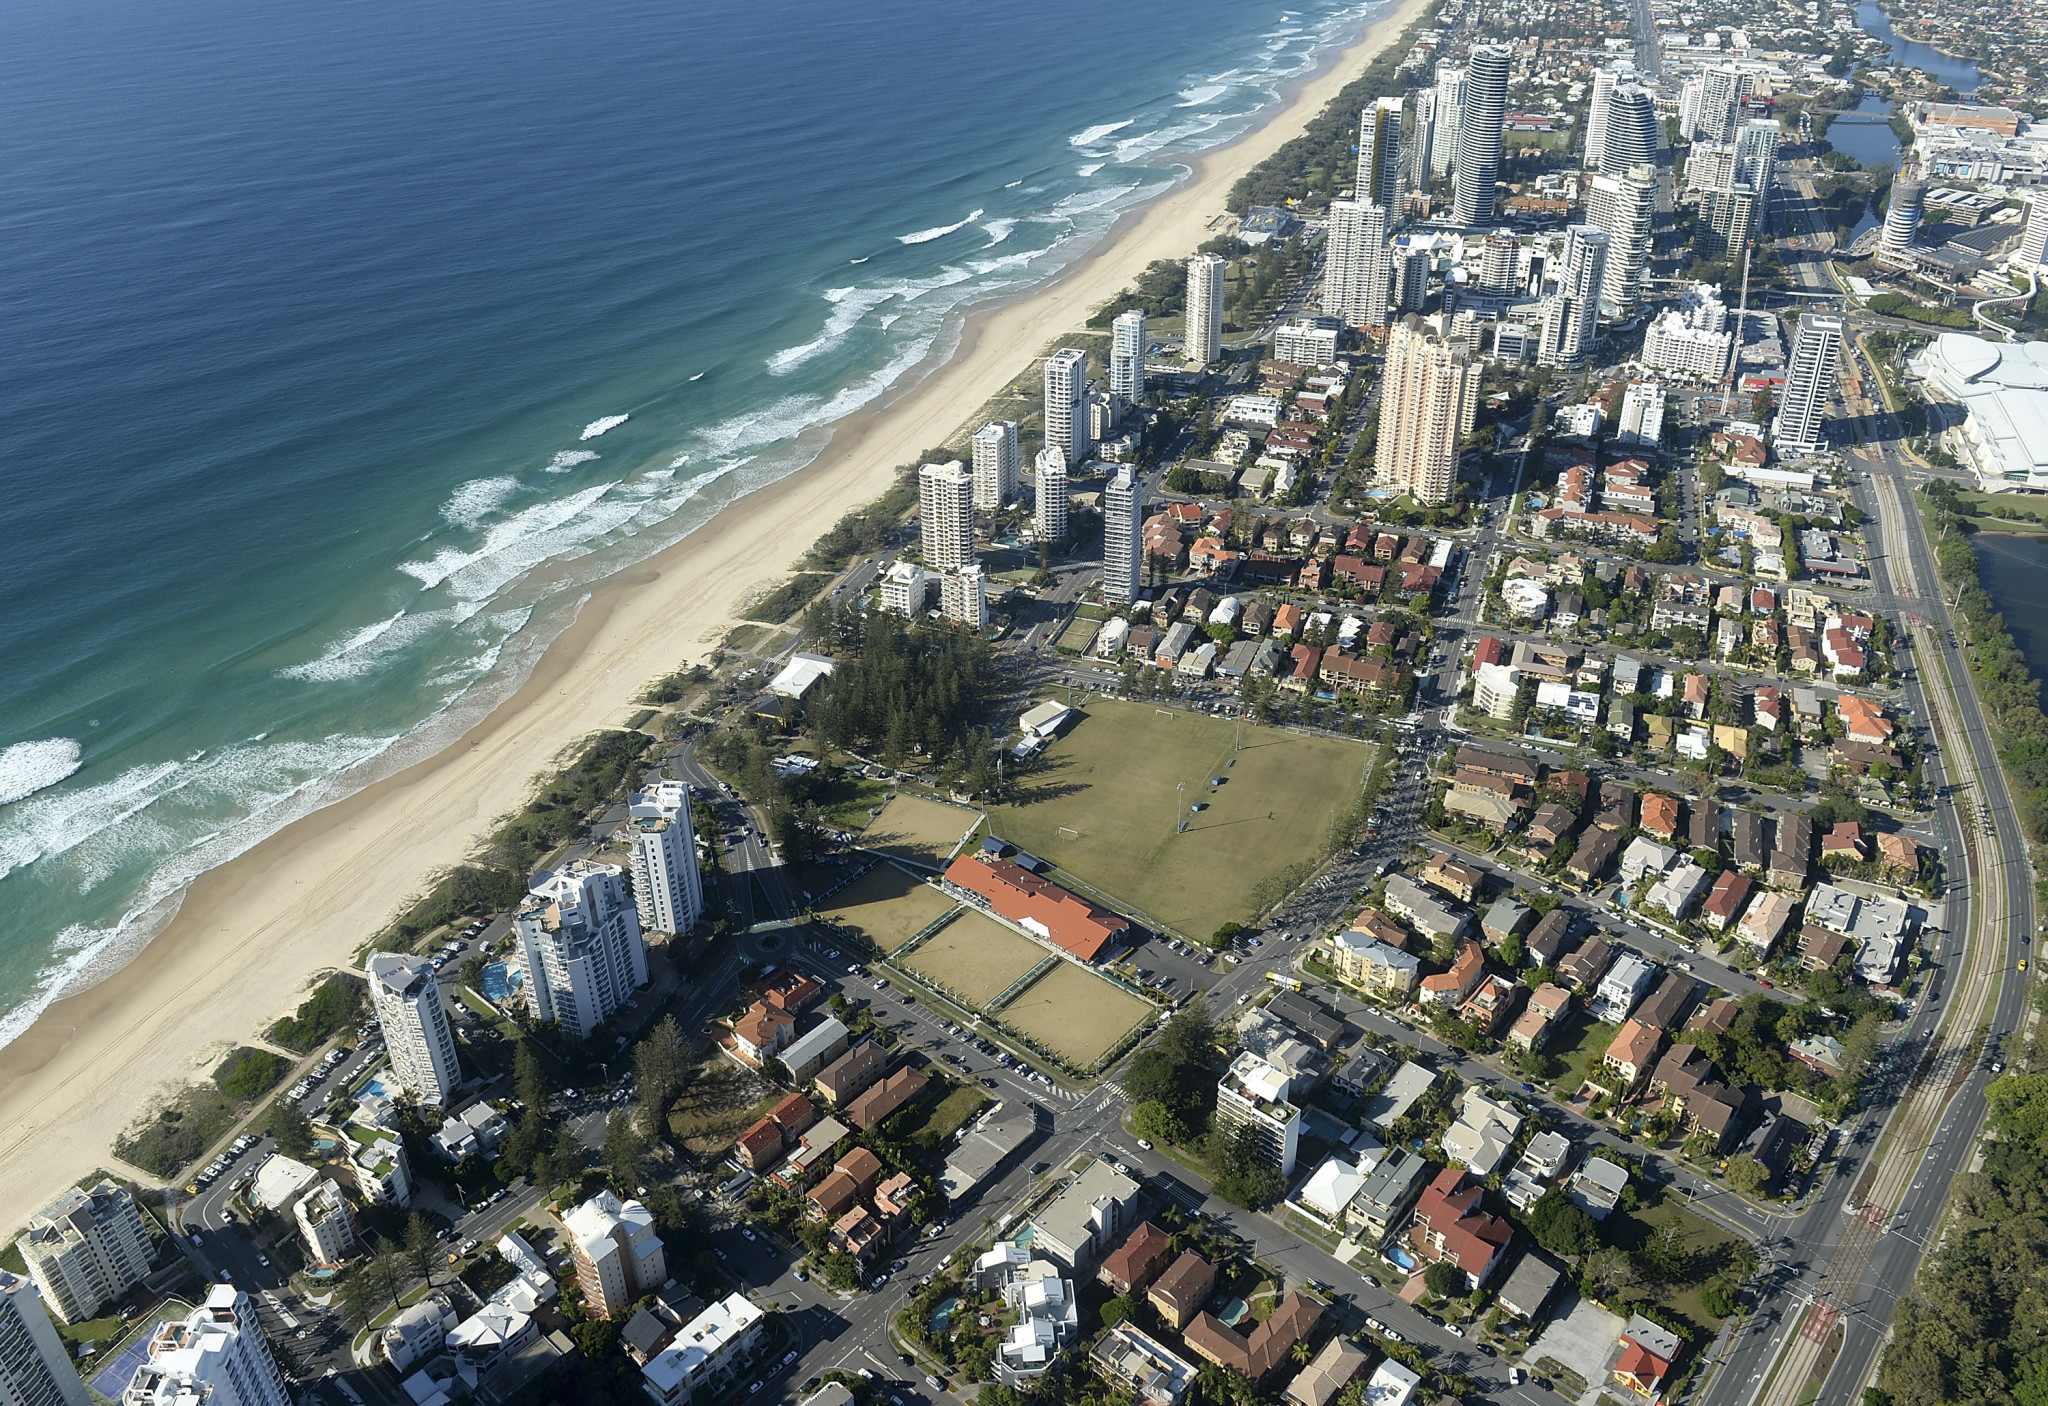 Defence helicopters and aircraft are set to conduct flights over Gold Coast prior to the Games to ensure they can operate safely in built up areas ©Getty Images